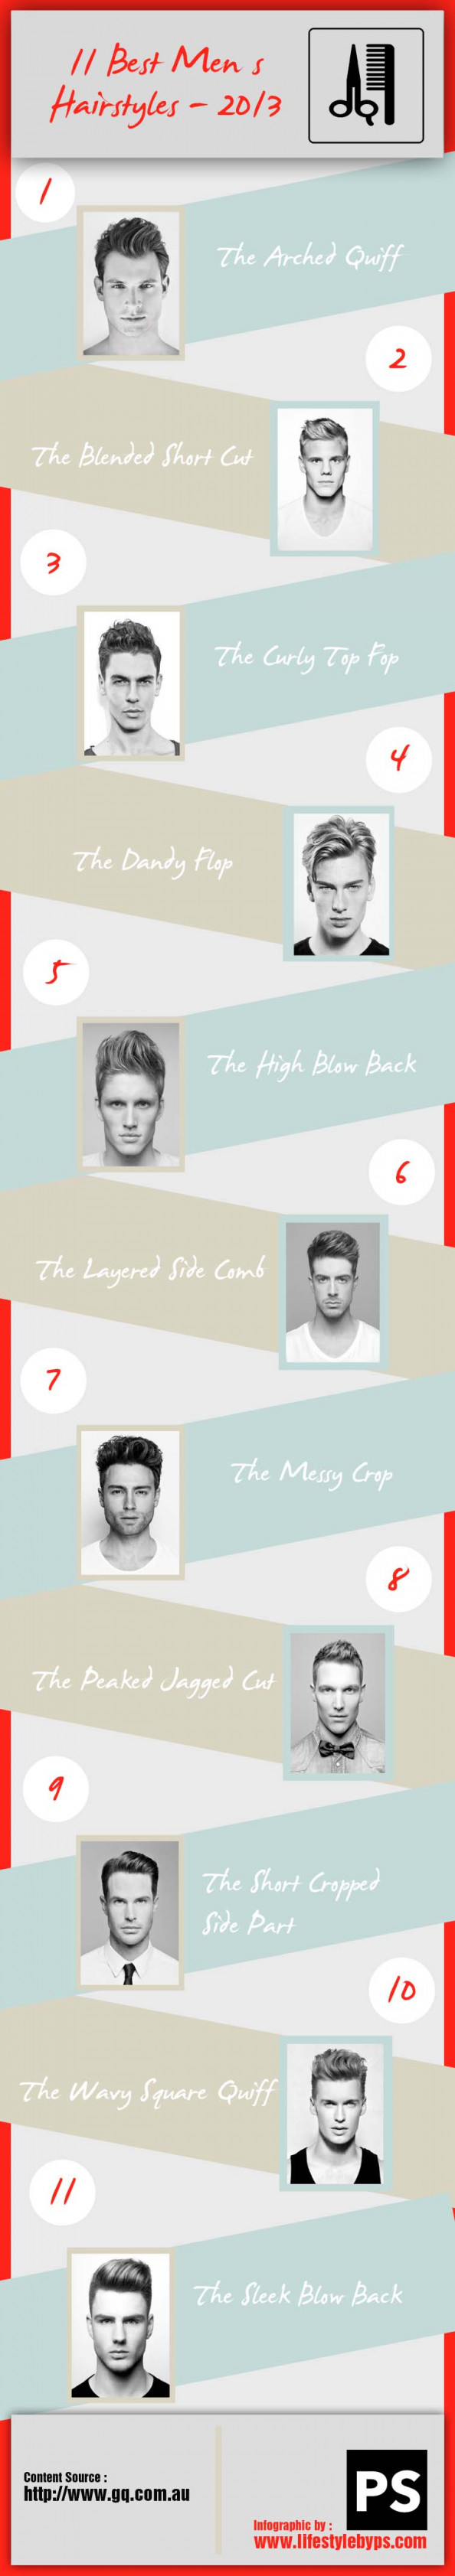 11 Best Men&#039;s Hairstyles 2013 - Infographic Infographic